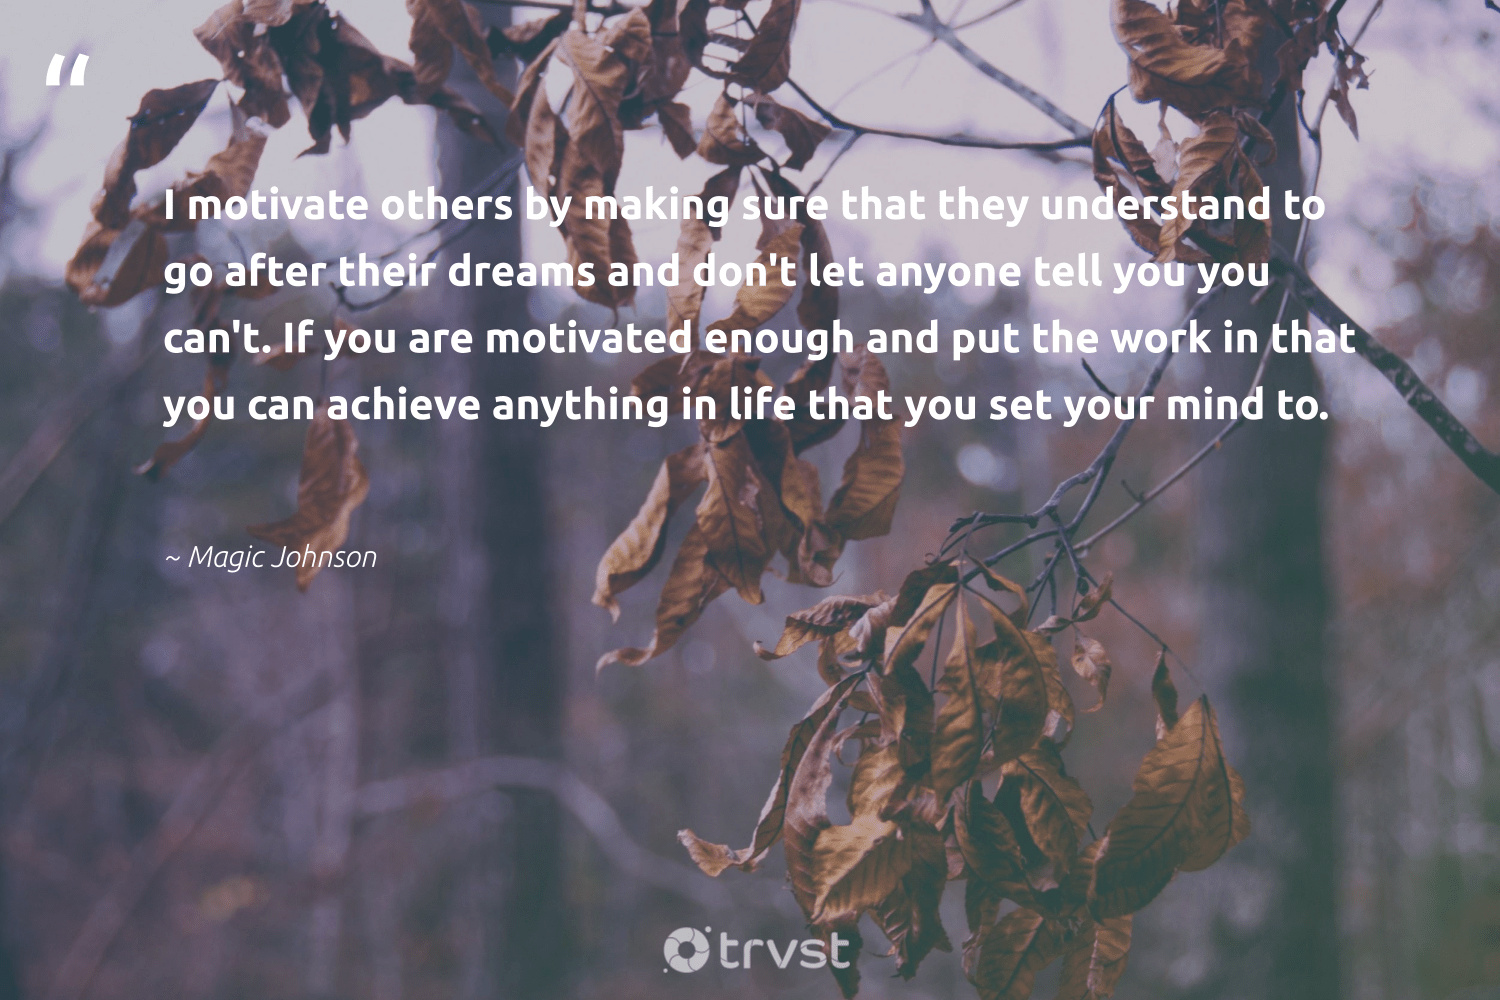 """I motivate others by making sure that they understand to go after their dreams and don't let anyone tell you you can't. If you are motivated enough and put the work in that you can achieve anything in life that you set your mind to.""  - Magic Johnson #trvst #quotes #softskills #collectiveaction #begreat #changetheworld #nevergiveup #dosomething #futureofwork #thinkgreen #dotherightthing #socialimpact"